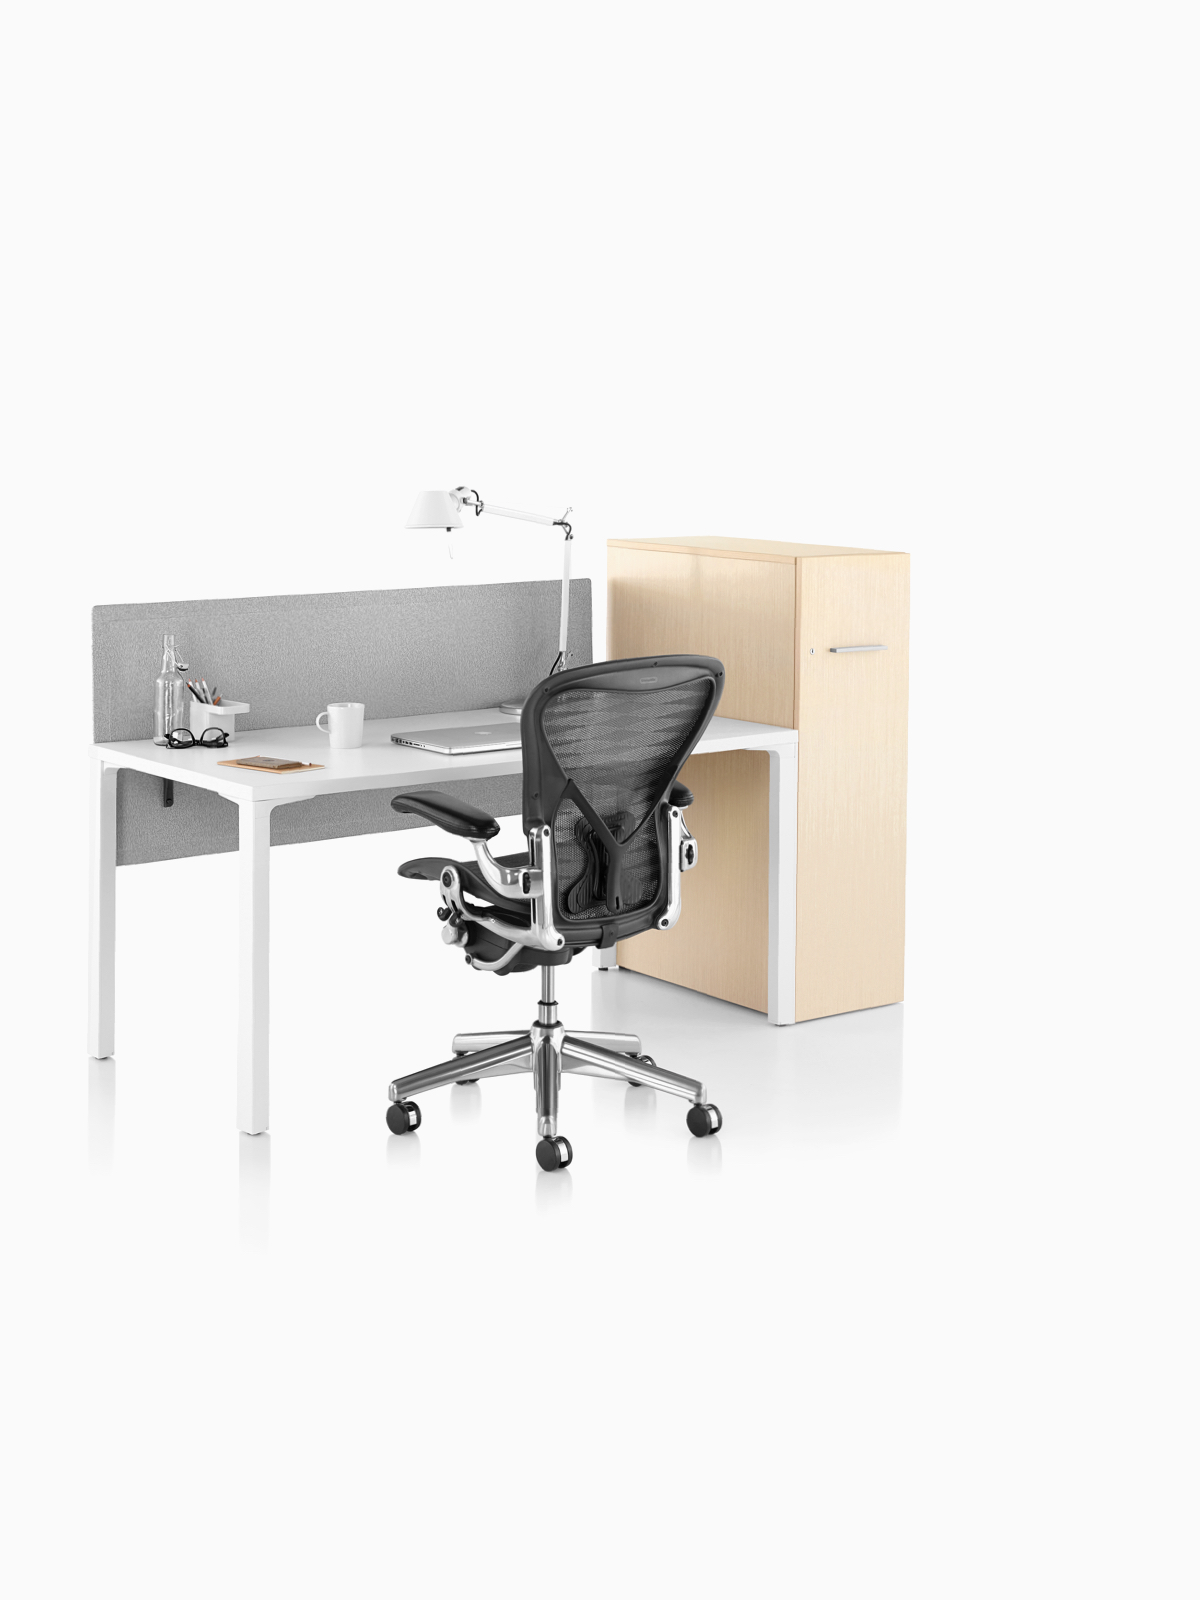 Matching Office Desk Accessories Storage Cabinets Herman Miller